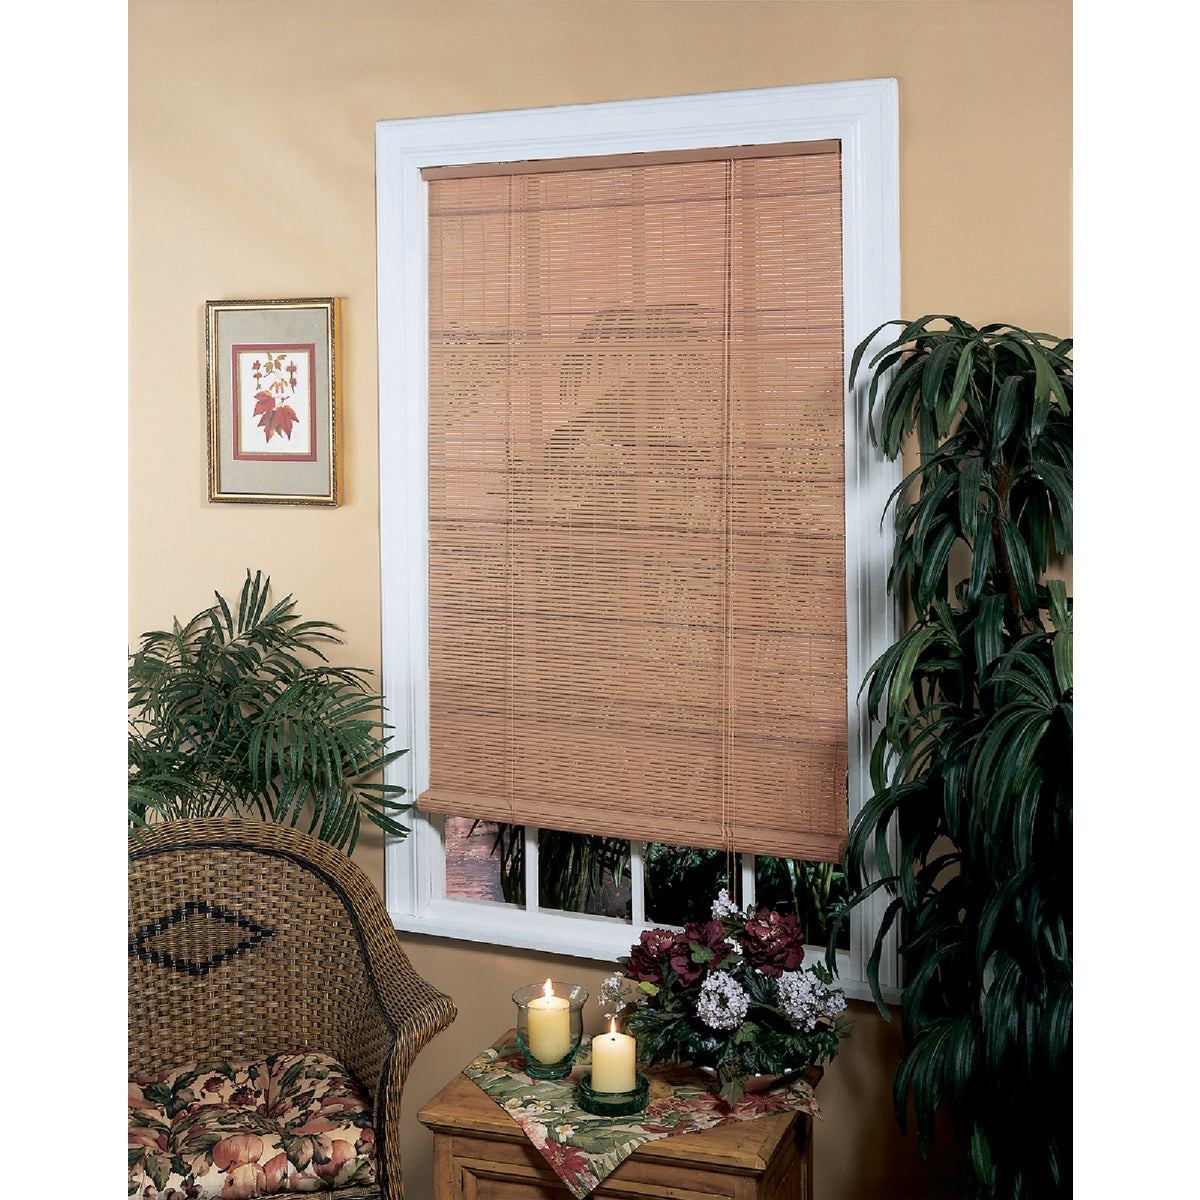 96X72 WDGN ROLL-UP BLIND - 0322086 by Lewis Hyman